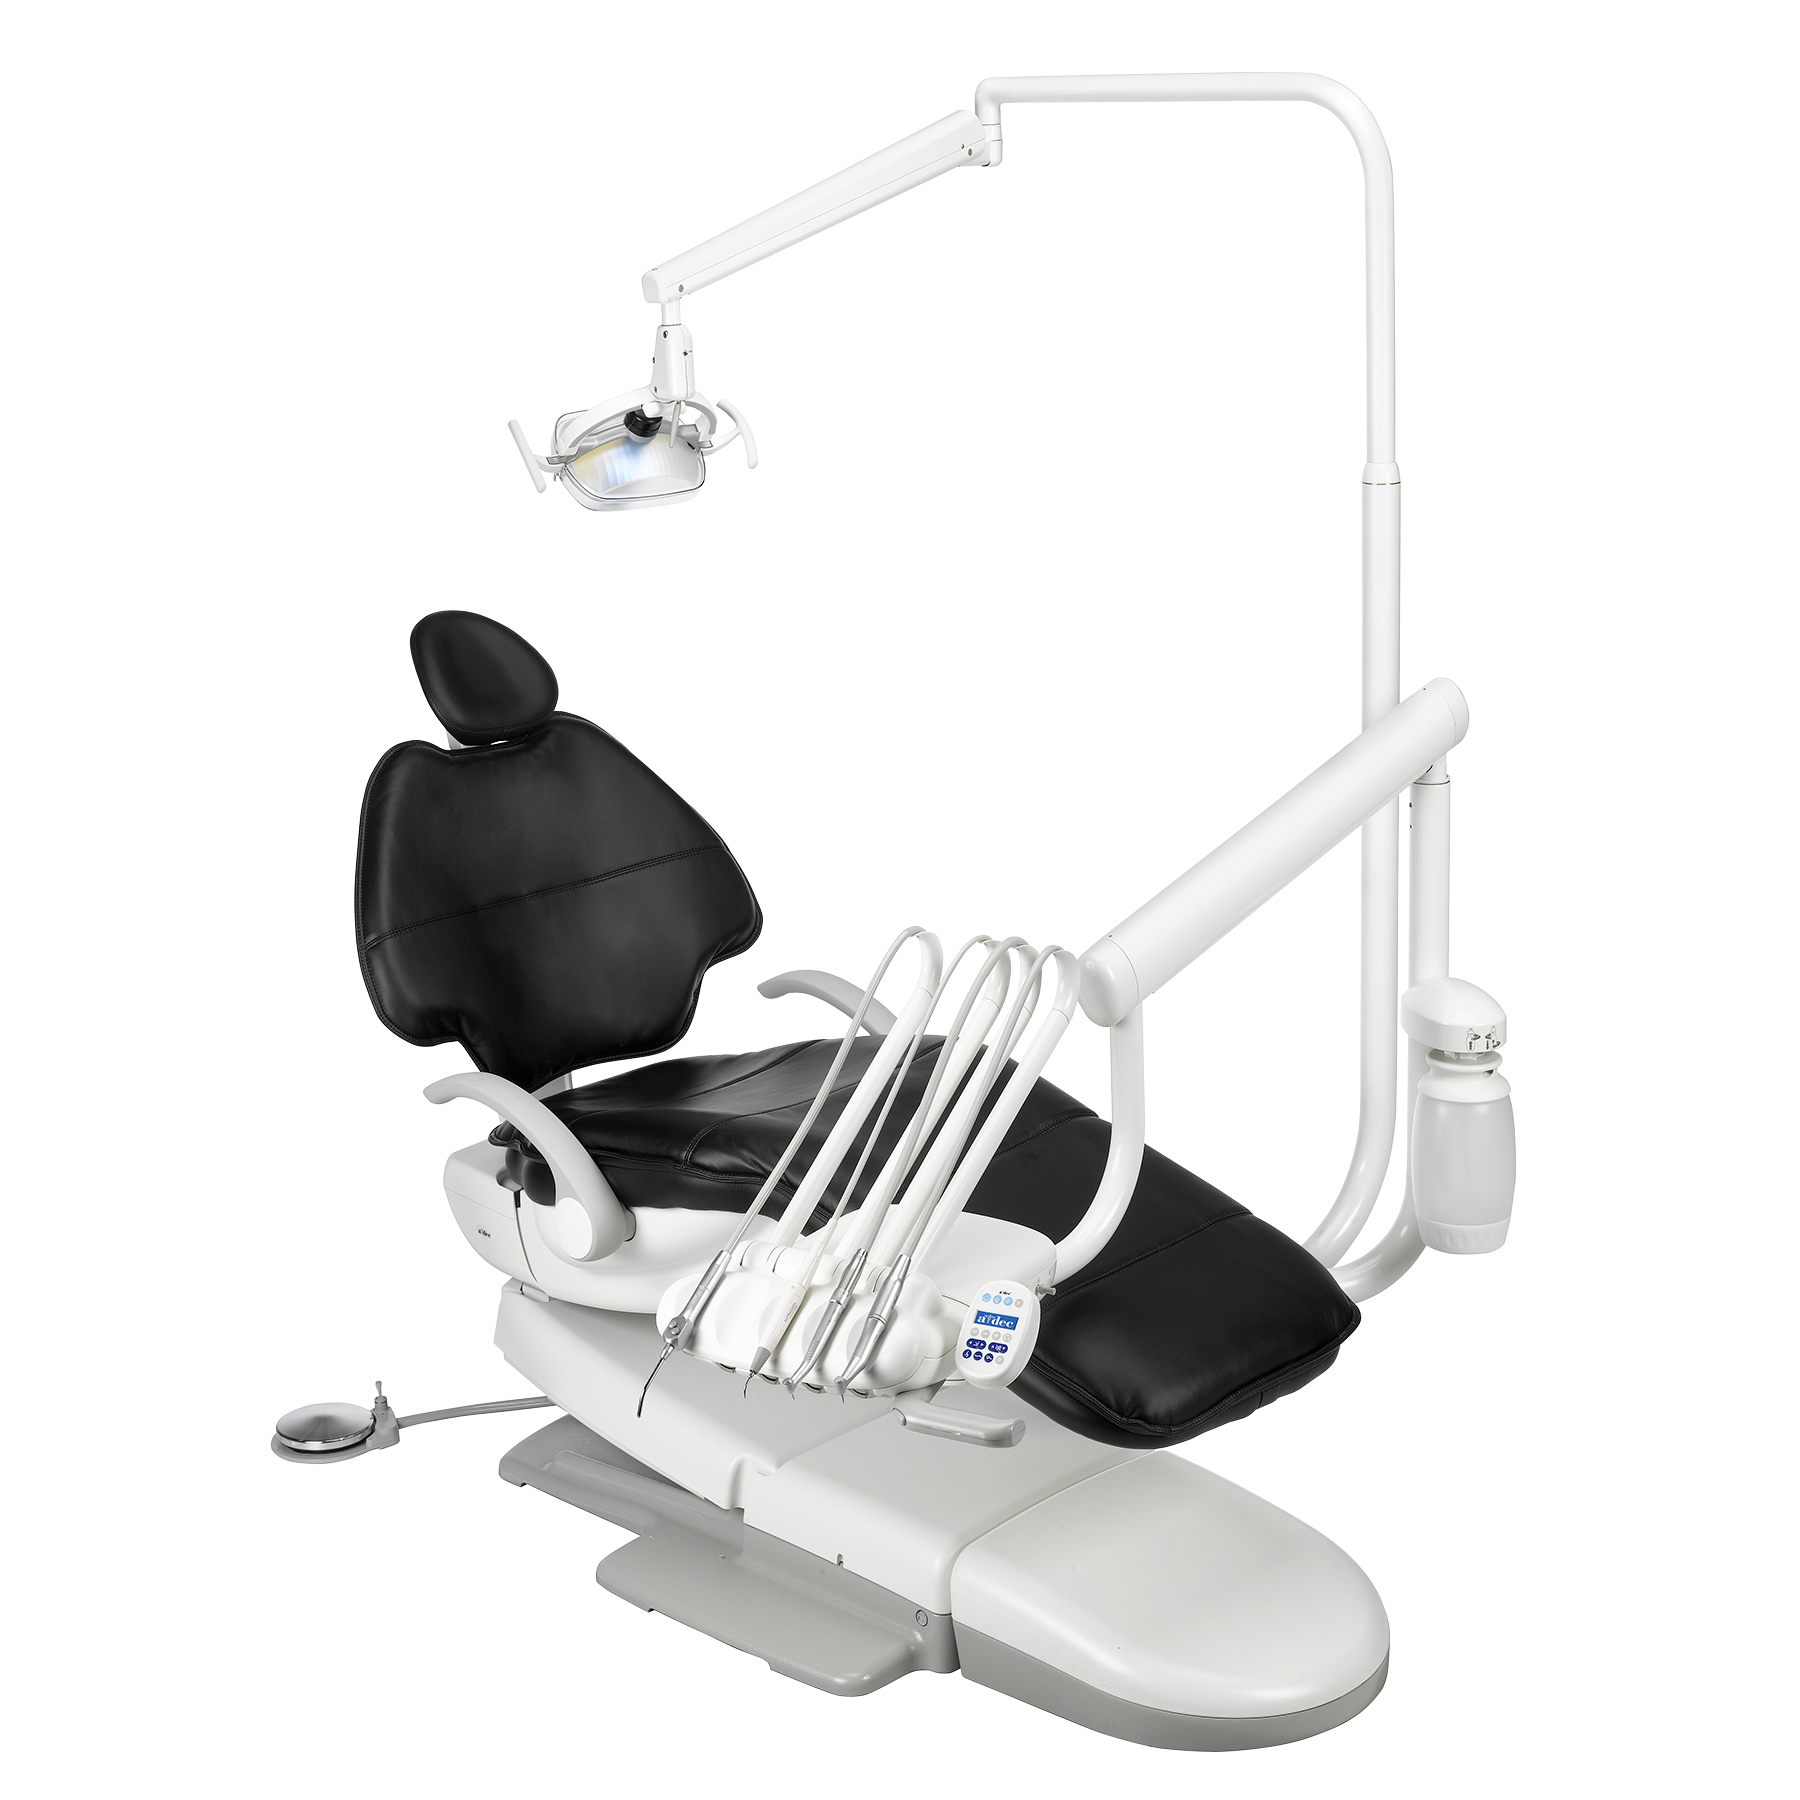 Image of A-Dec 500 Dental Chair